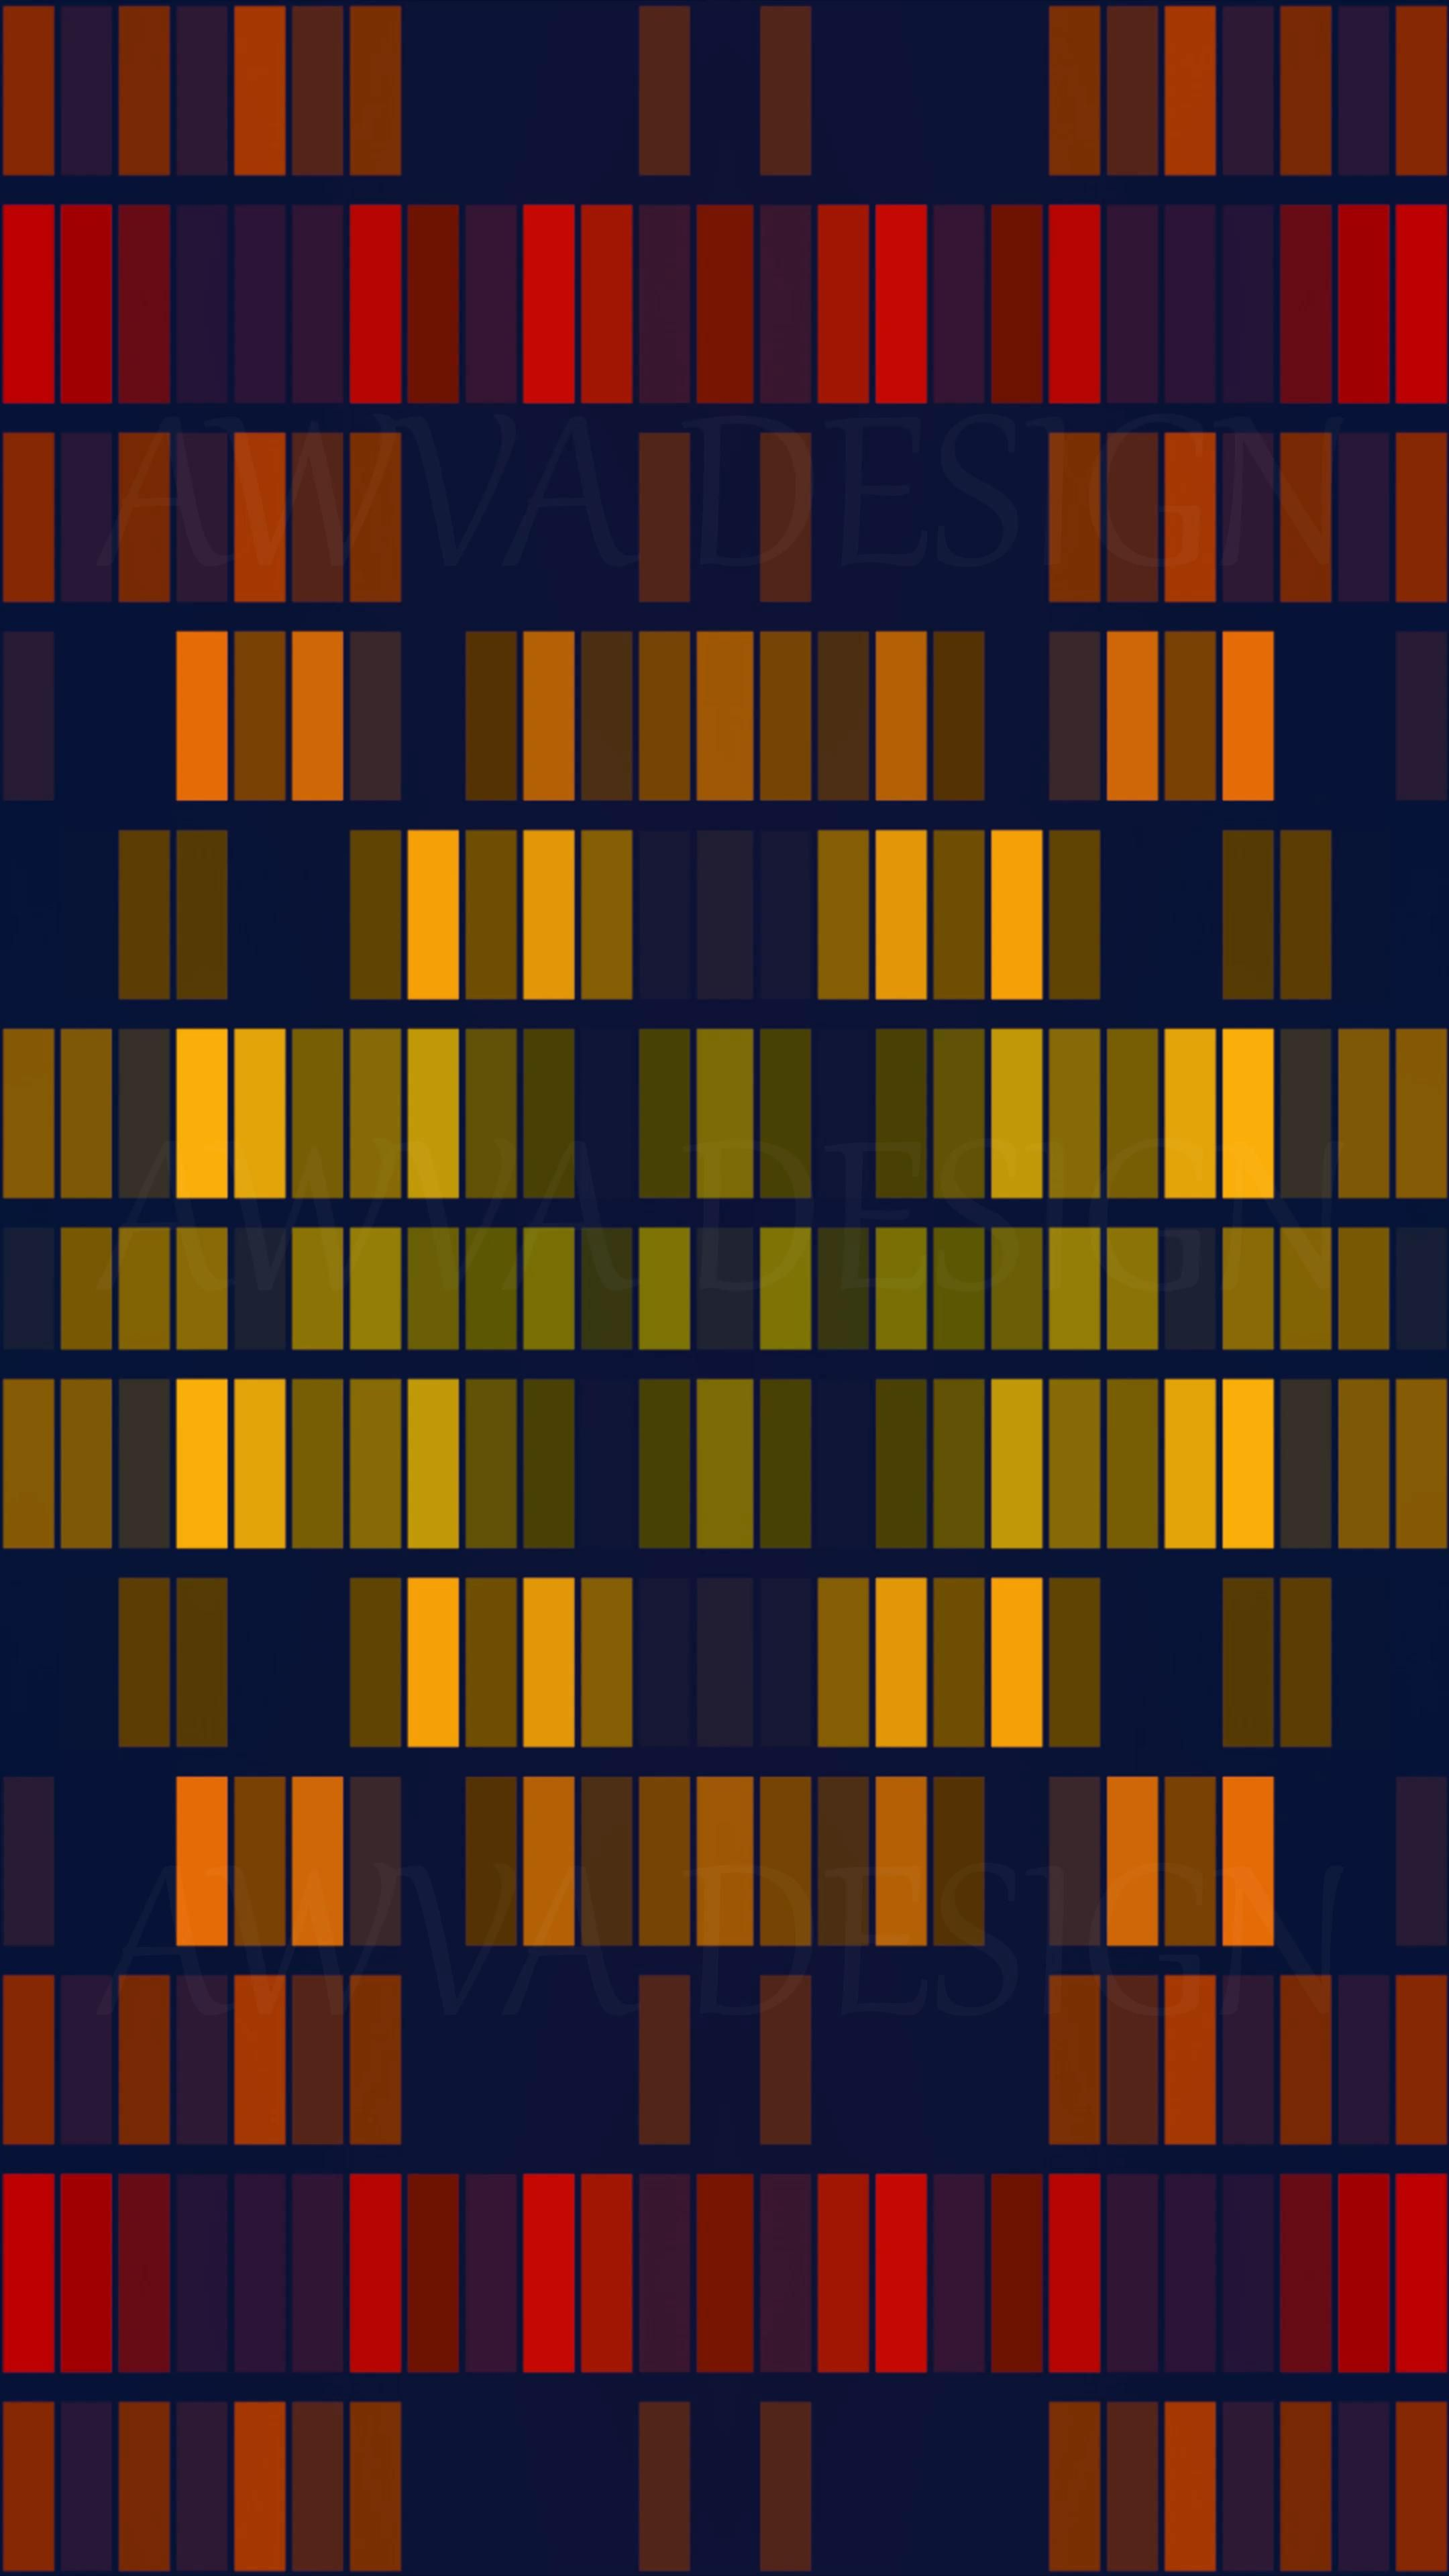 Abstract background with colorful rectangles.